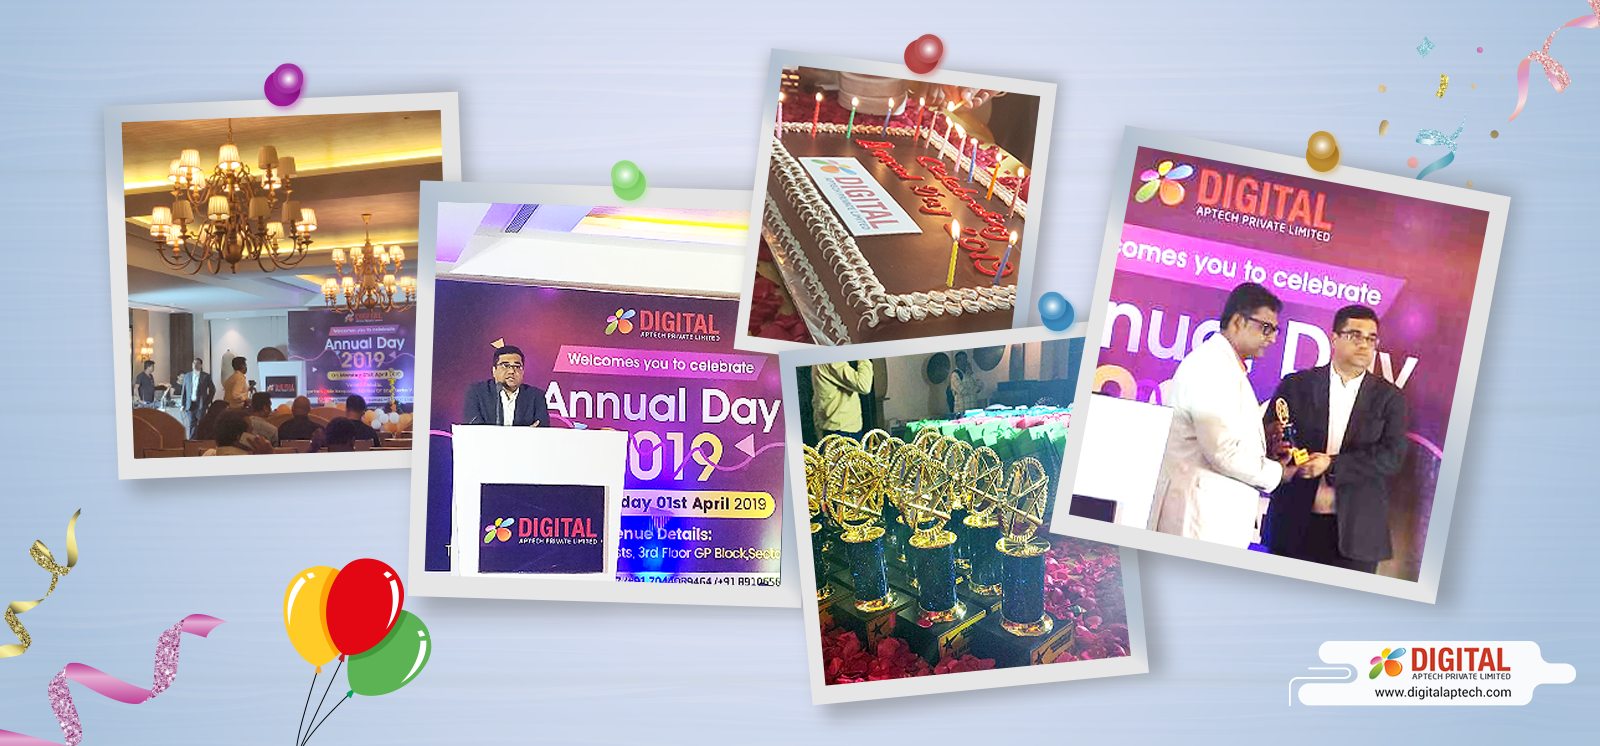 The Joyous Celebration of Digital Aptech's 7th Foundation Day